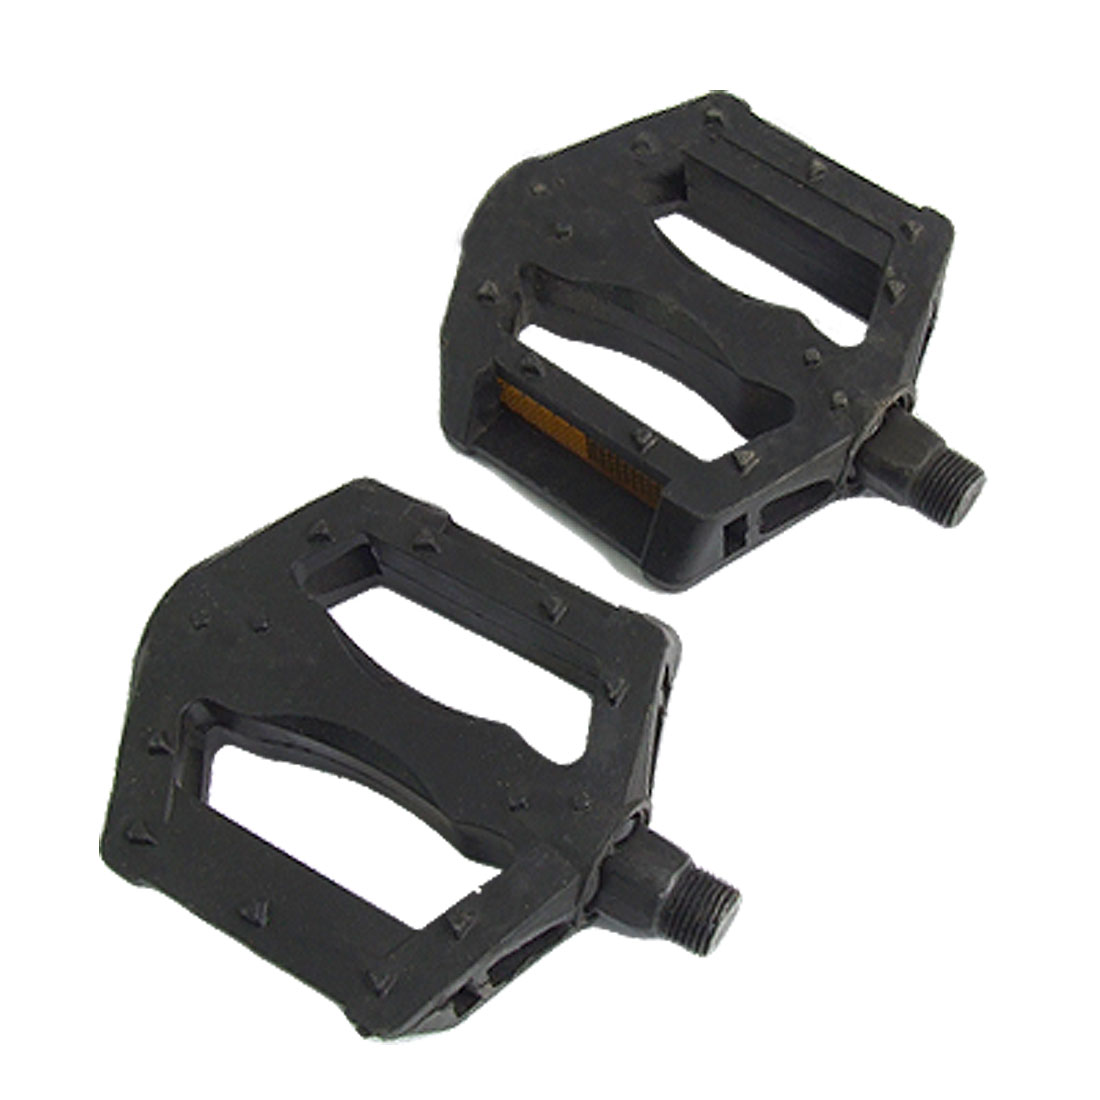 2 Pcs Black Replacement Hard Plastic Bicycle Pedal